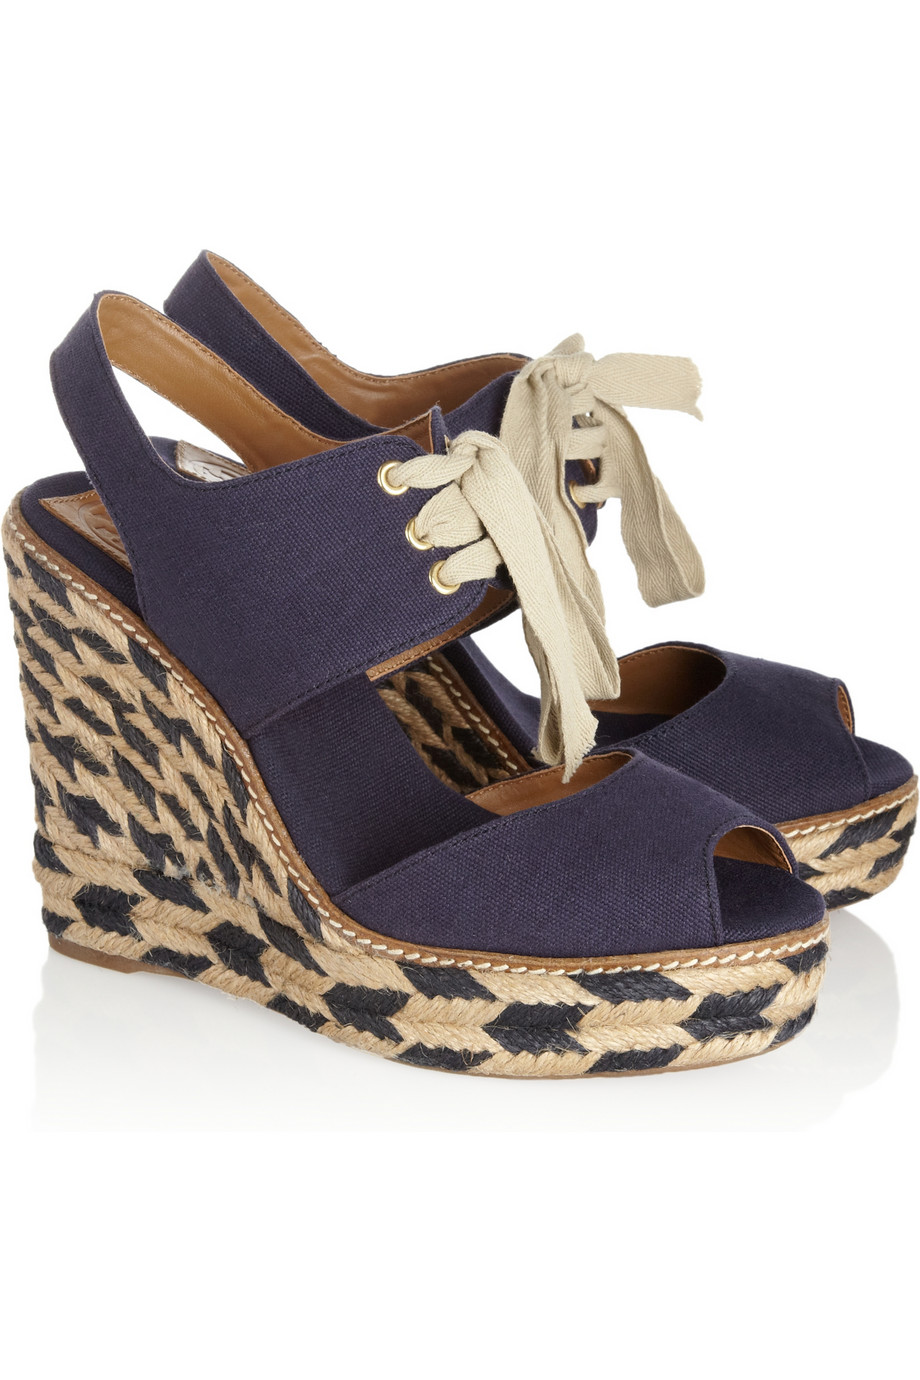 717654e44 Lyst - Tory Burch Linley Canvas Wedge Sandals in Blue